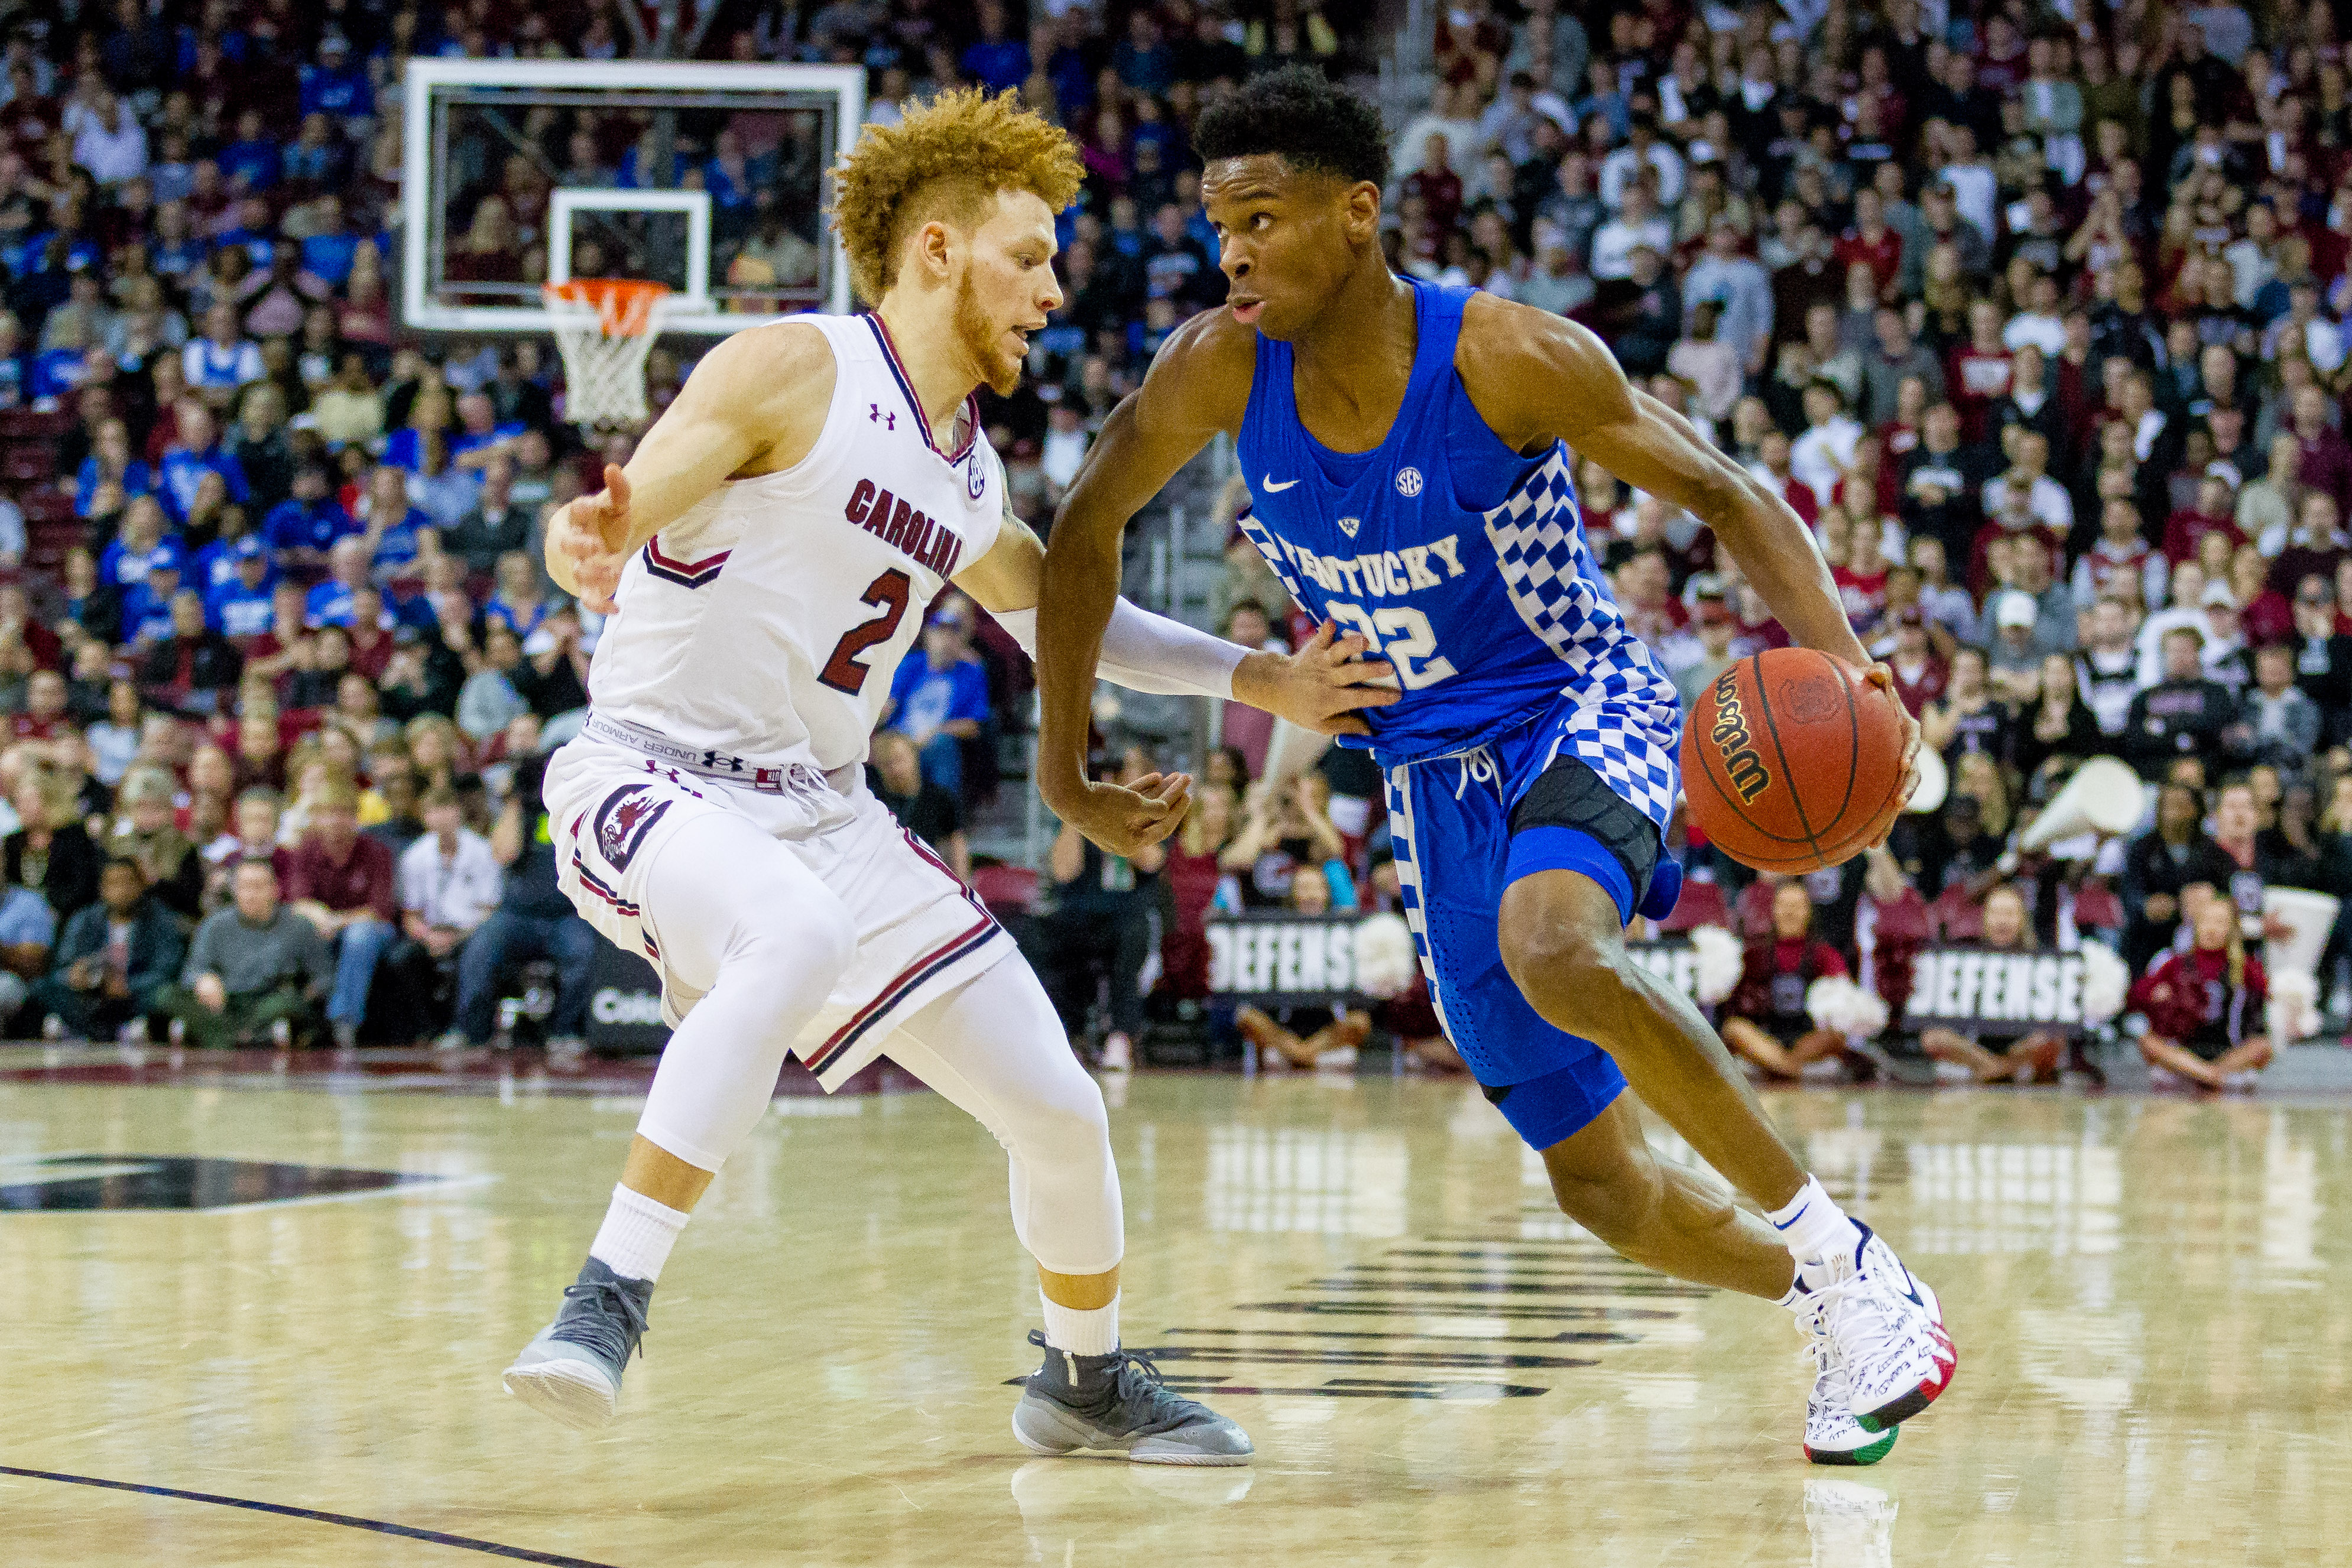 January 16, 2018: South Carolina Gamecocks guard Hassani Gravett (2) defends the drive by Kentucky Wildcats guard Shai Gilgeous-Alexander (22) in the SEC Basketball matchup at Colonial Life Arena in Columbia, SC. (Scott Kinser/Cal Sport Media)(Credit Image: © Scott Kinser/CSM via ZUMA Wire)